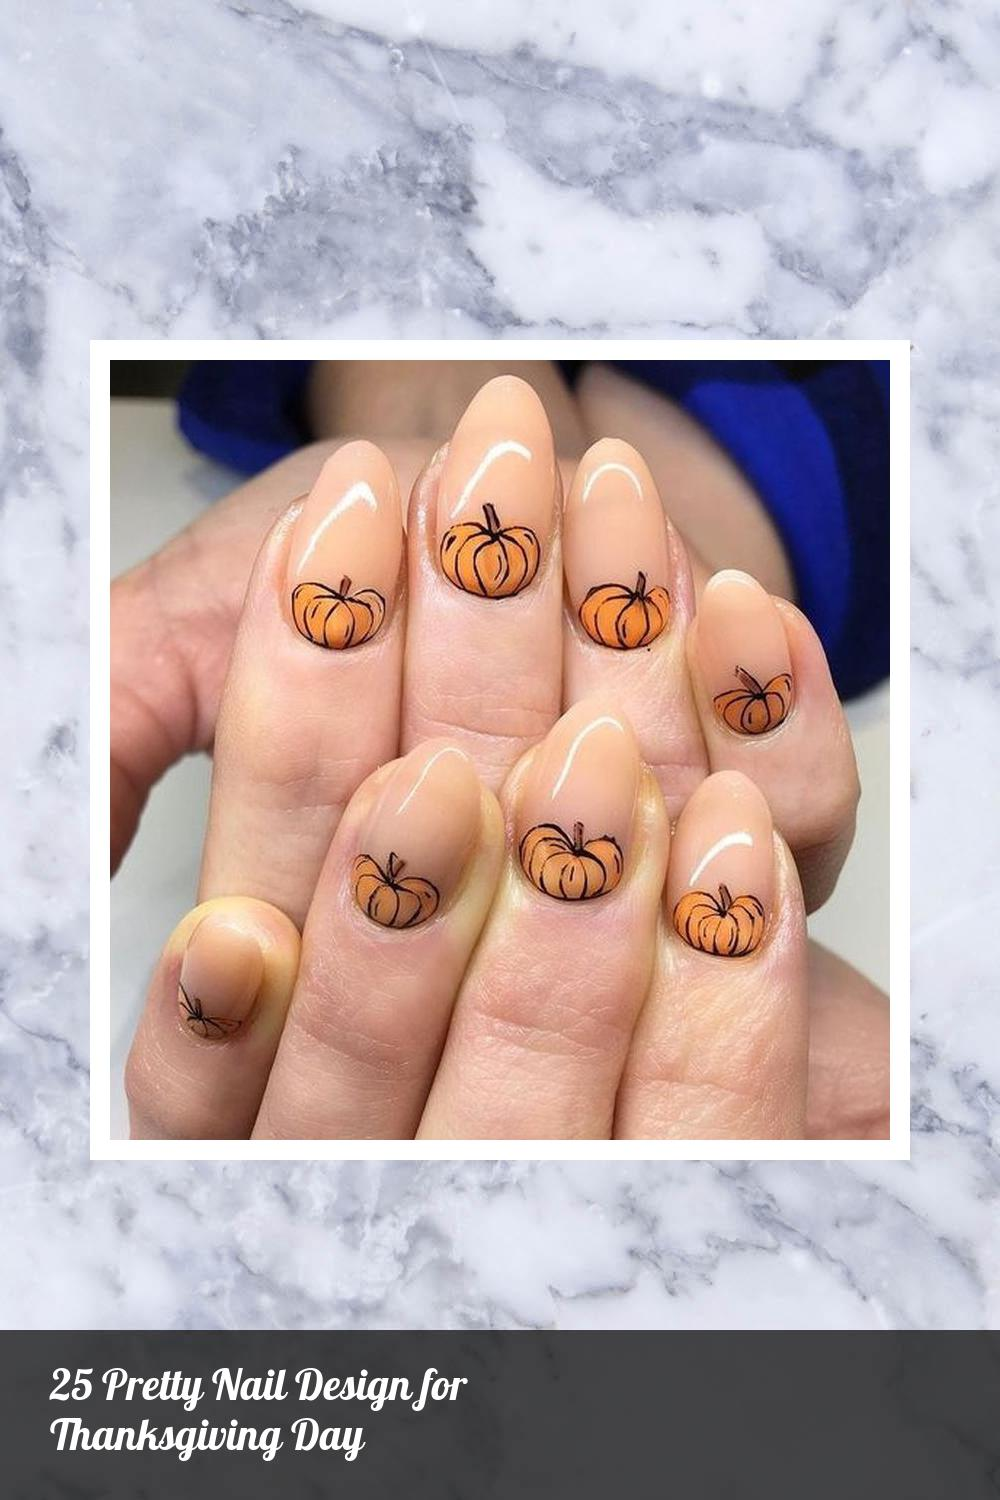 25 Pretty Nail Design for Thanksgiving Day 16